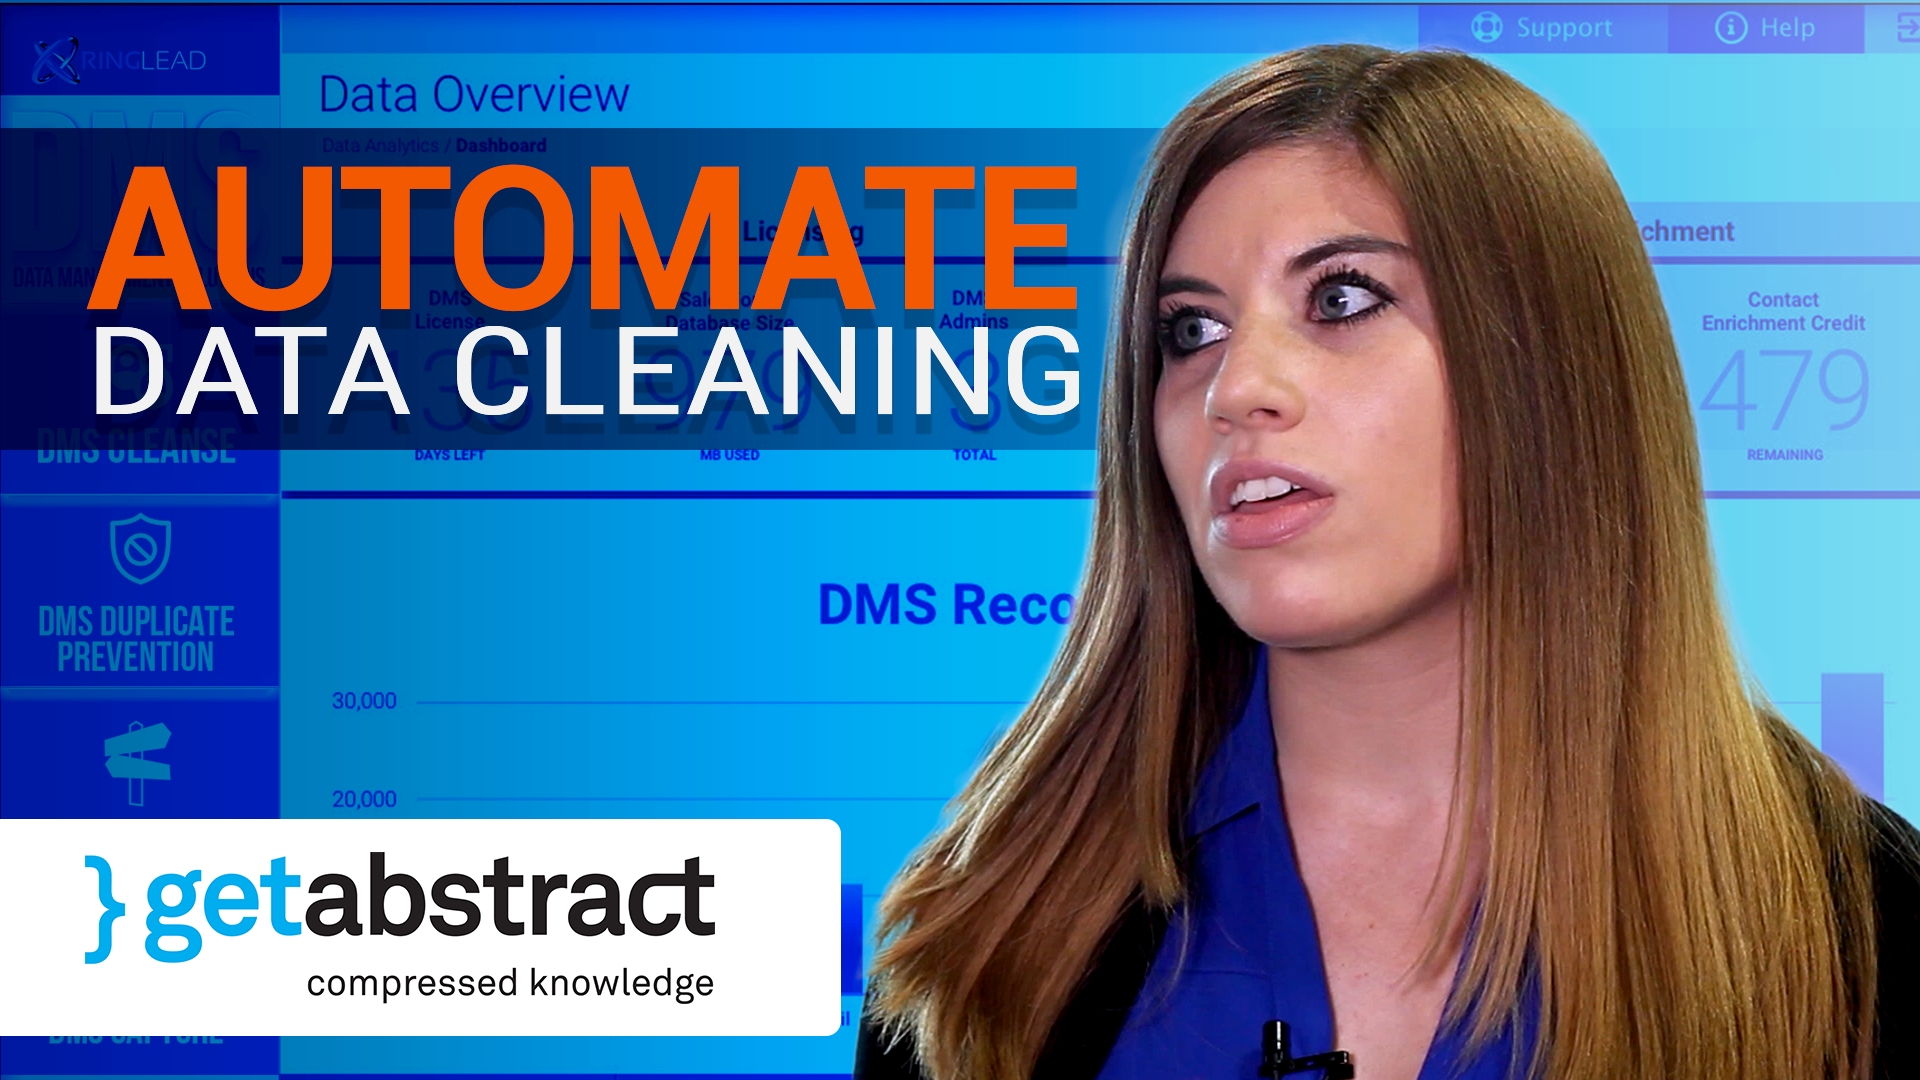 CASE STUDY: GetAbstract Testemonial- Automate Data Cleaning in Your CRM